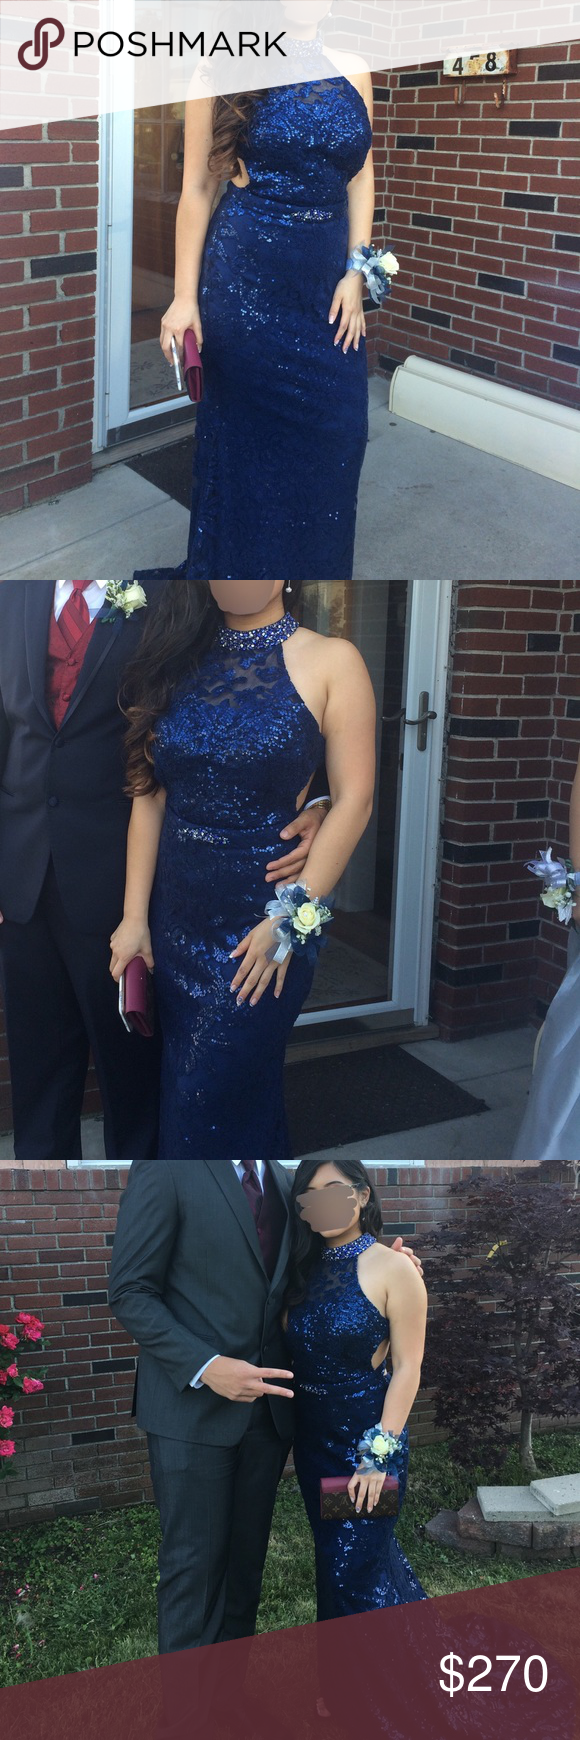 Prom dress size paris dresses dress brands and dress prom